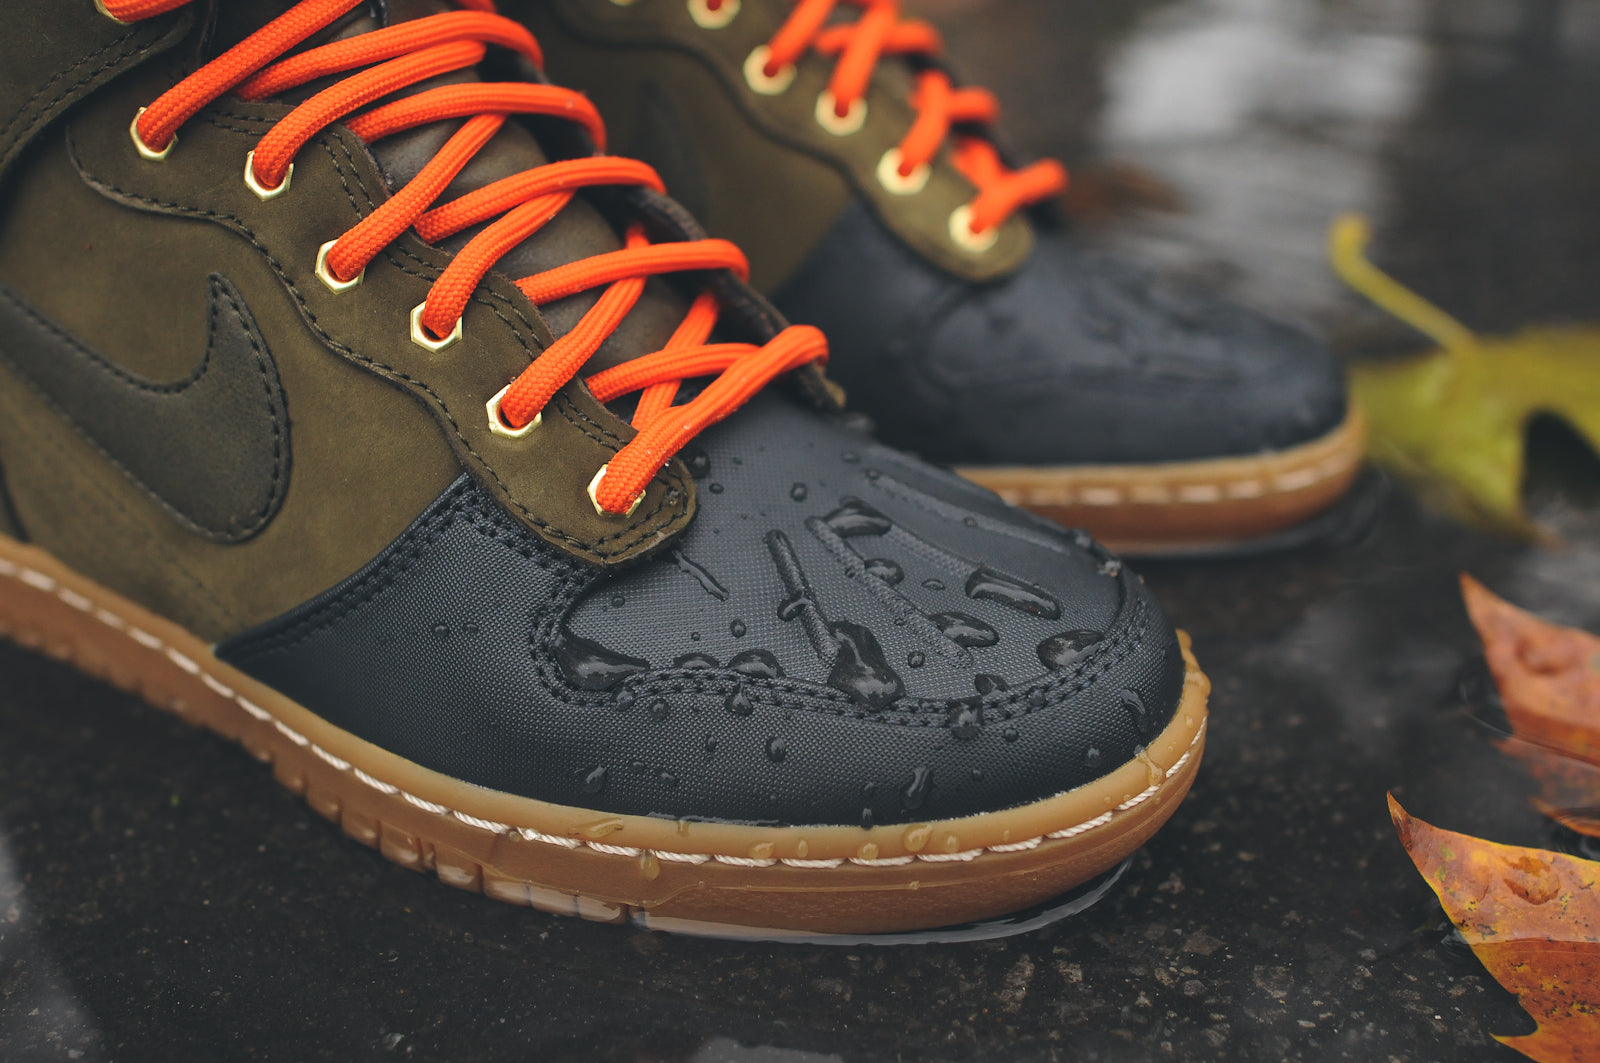 save off b9979 6ac04 Thus far, the third of its kind to arrive at KITH NYC is the NIKE WMNS Dunk  Sky Hi Sneakerboot 2.0 - Dark Loden/Black. Featuring the same silhouette as  its ...